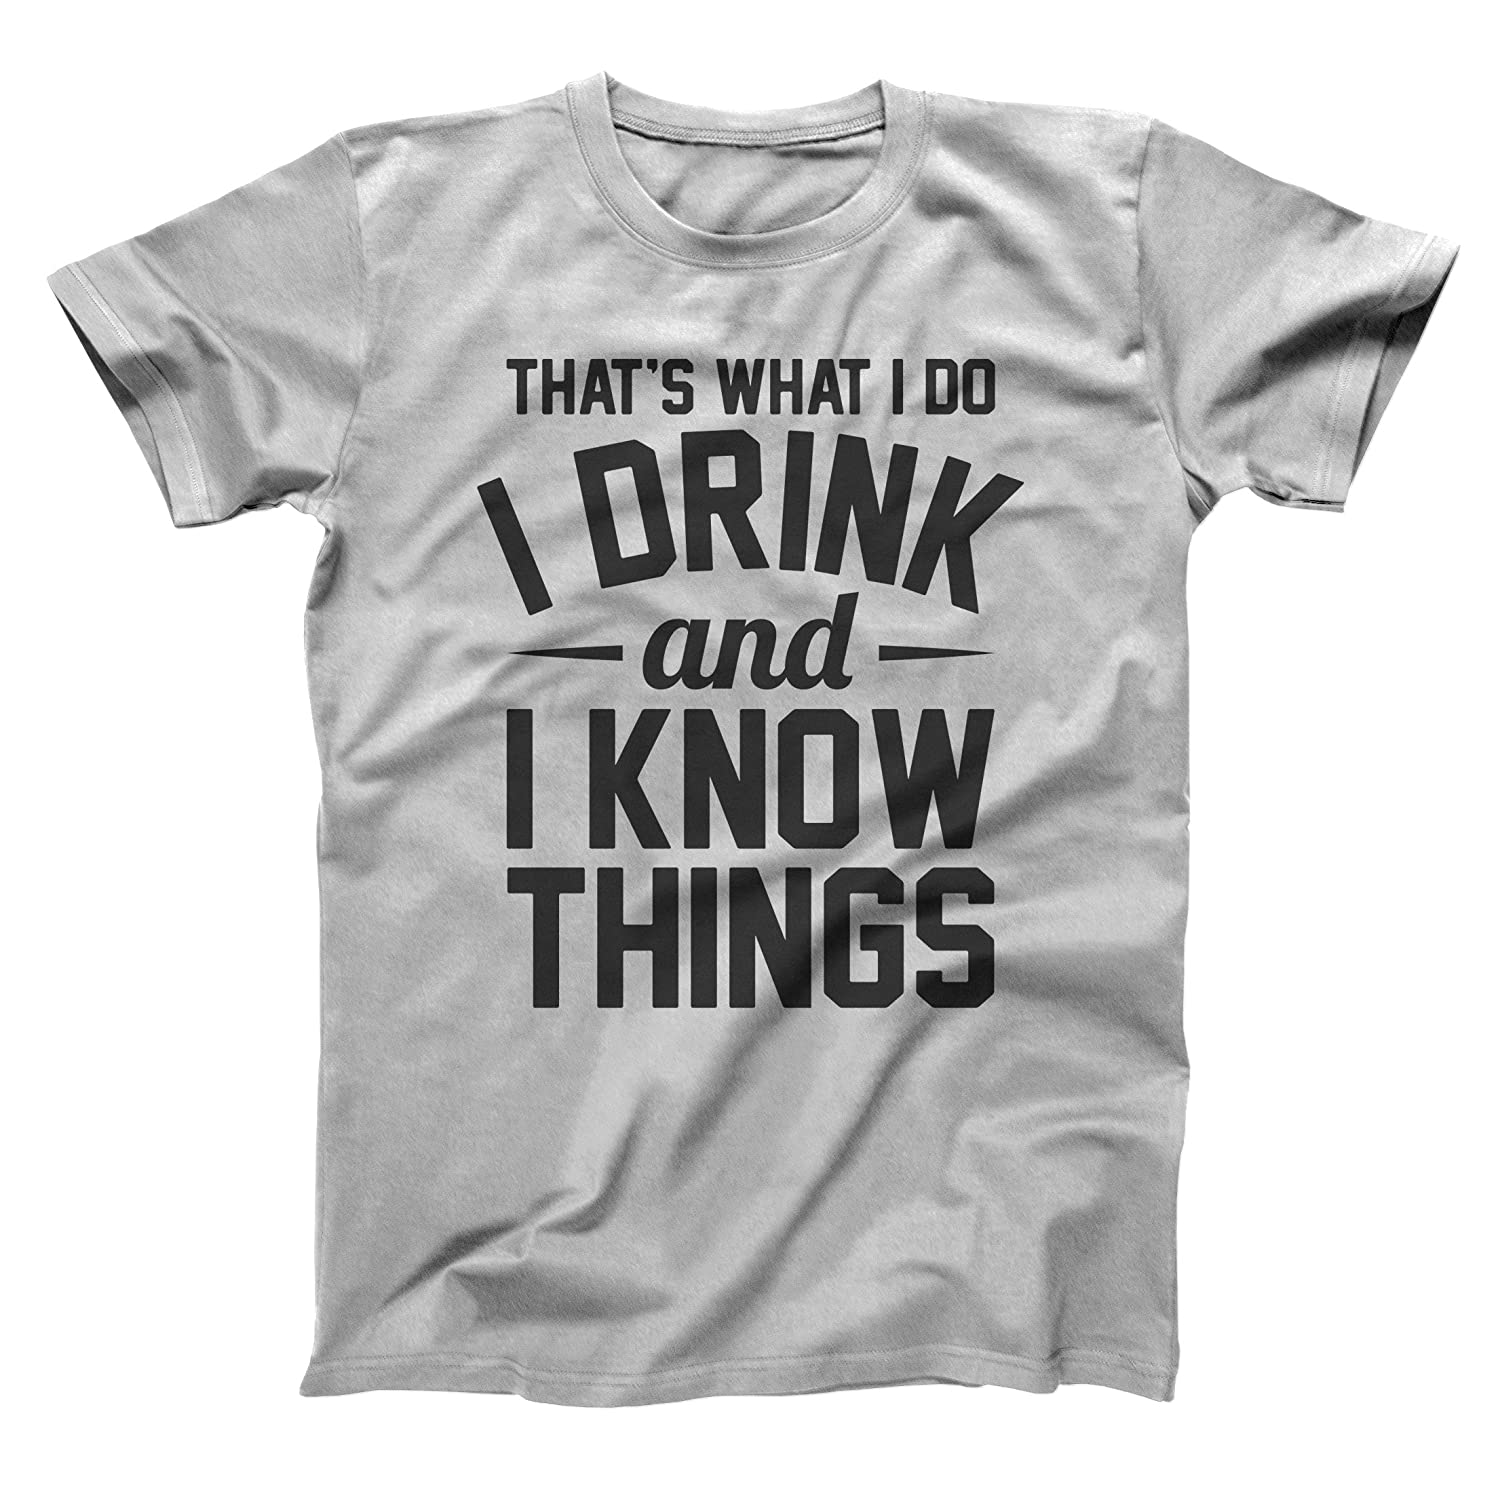 adde2a70c Amazon.com: Funny Threads Outlet That's What I Do I Drink and I Know Things  GoT Thrones Tyrion Lannister Mens Shirt: Clothing